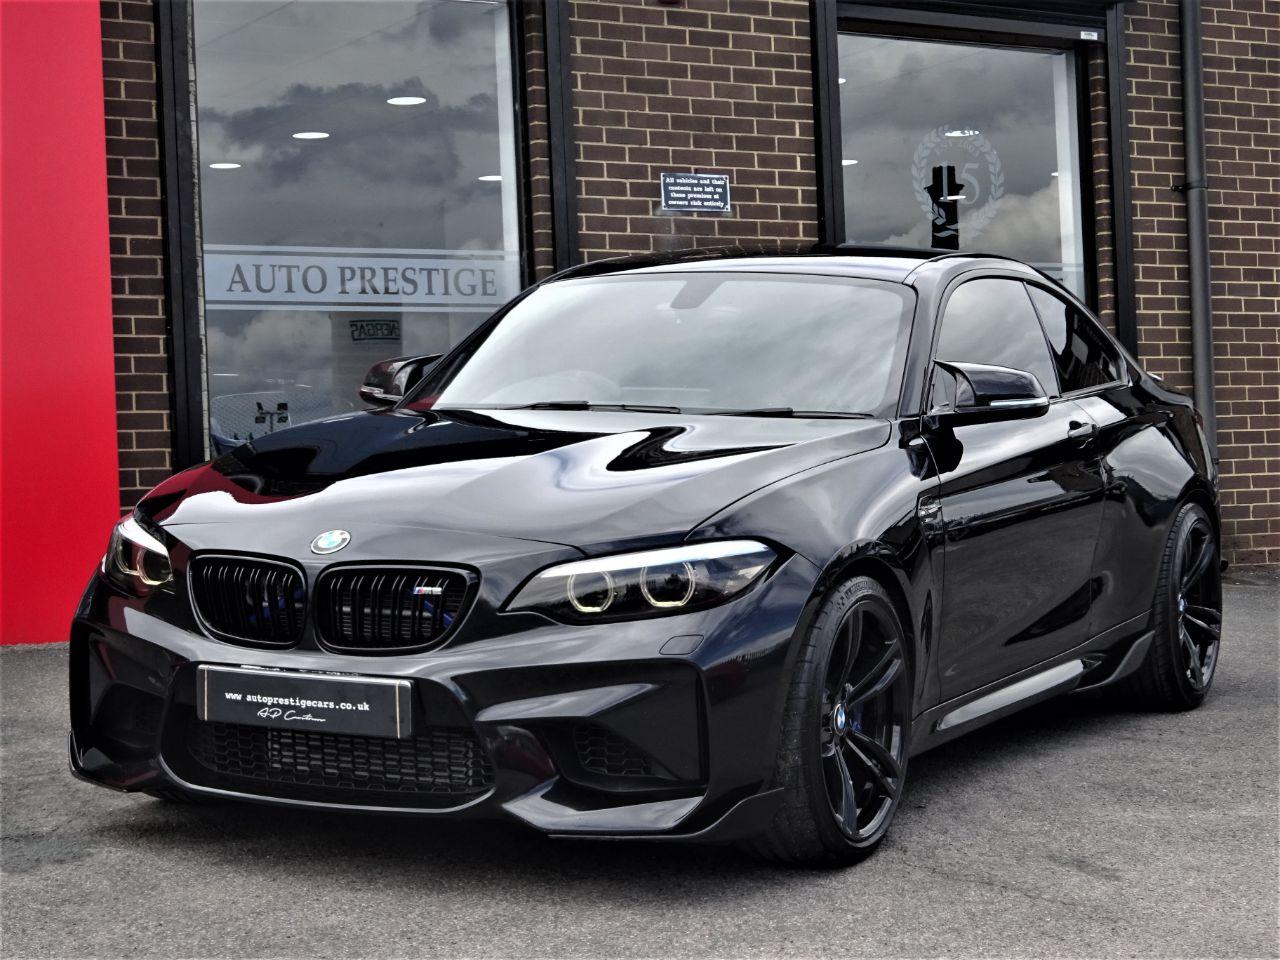 BMW M2 3.0 M2 2dr DCT WITH HUGH SPEC 67 REG CARBON PACK AND EXHAUSTS SHOW CAR SPEC Coupe Petrol Black at Autoprestige Bradford